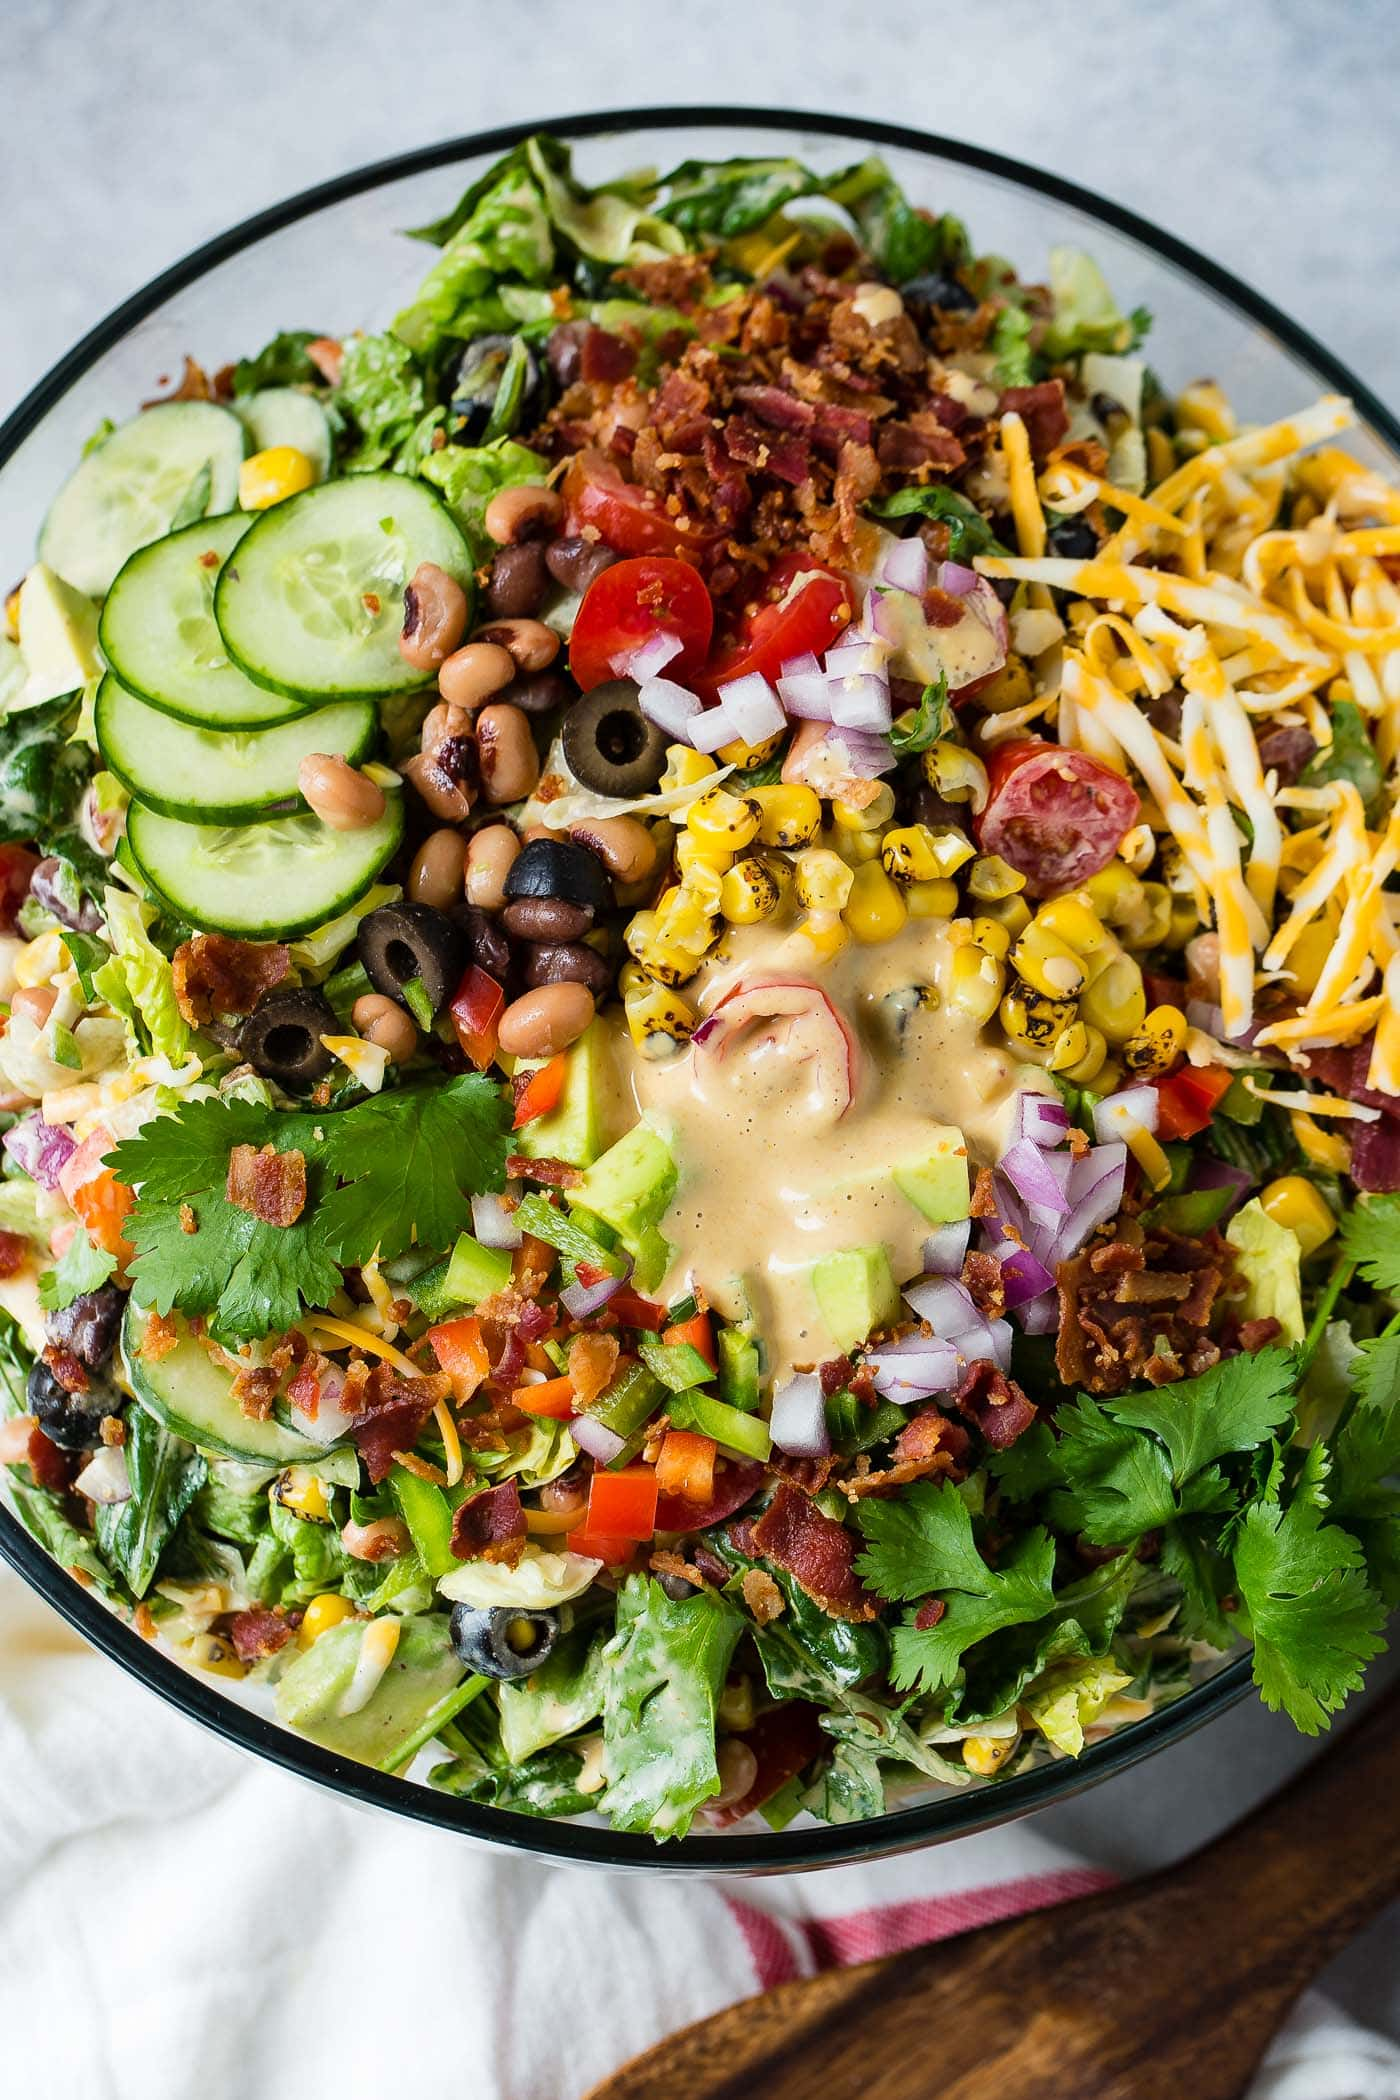 A top view of cowboy salad in a glass serving bowl. There are sliced cucumbers, sliced olives, chopped tomatoes, avocados, lettuce and green onions. It contains corn and beans too and is topped with dressing.